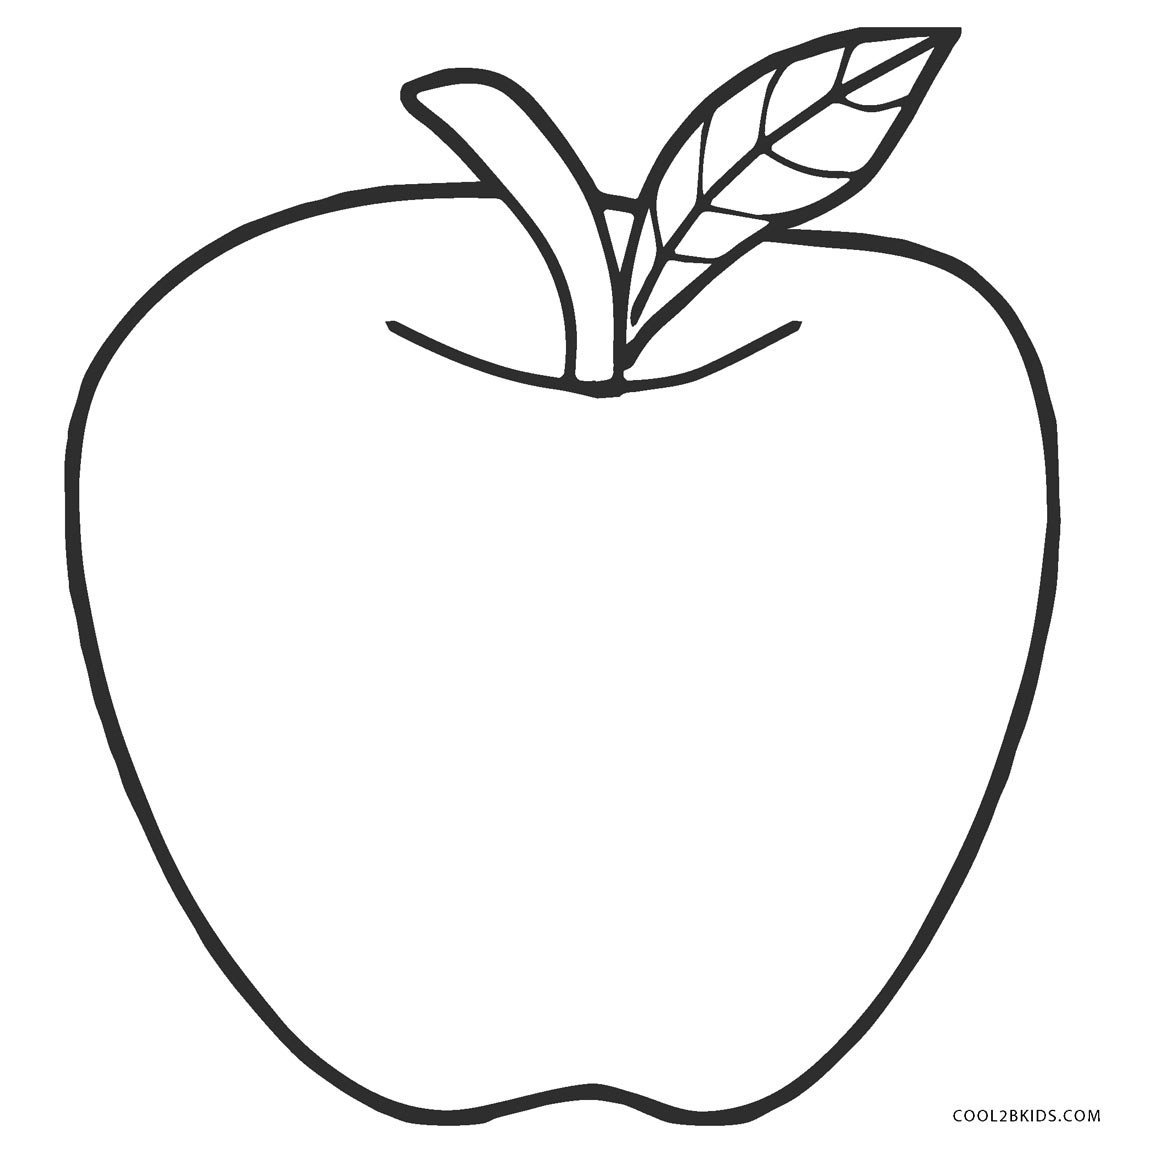 coloring apple page free printable apple coloring pages for kids apple page coloring